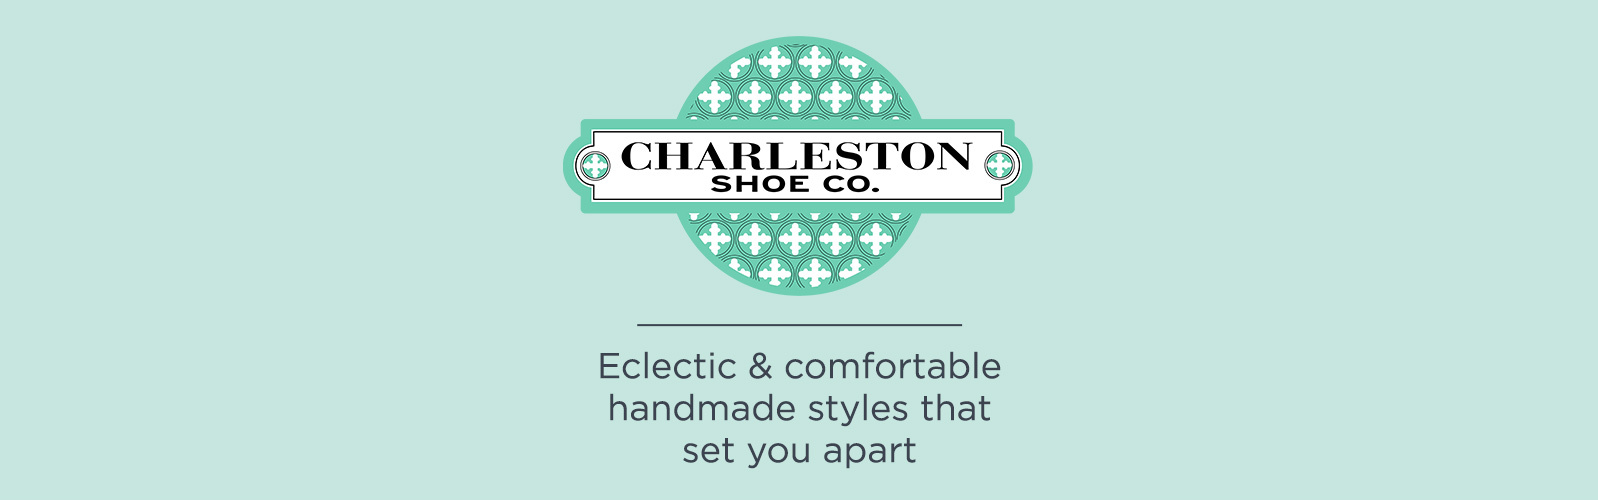 Charleston Shoe Co. Eclectic & comfortable handmade styles that set you apart